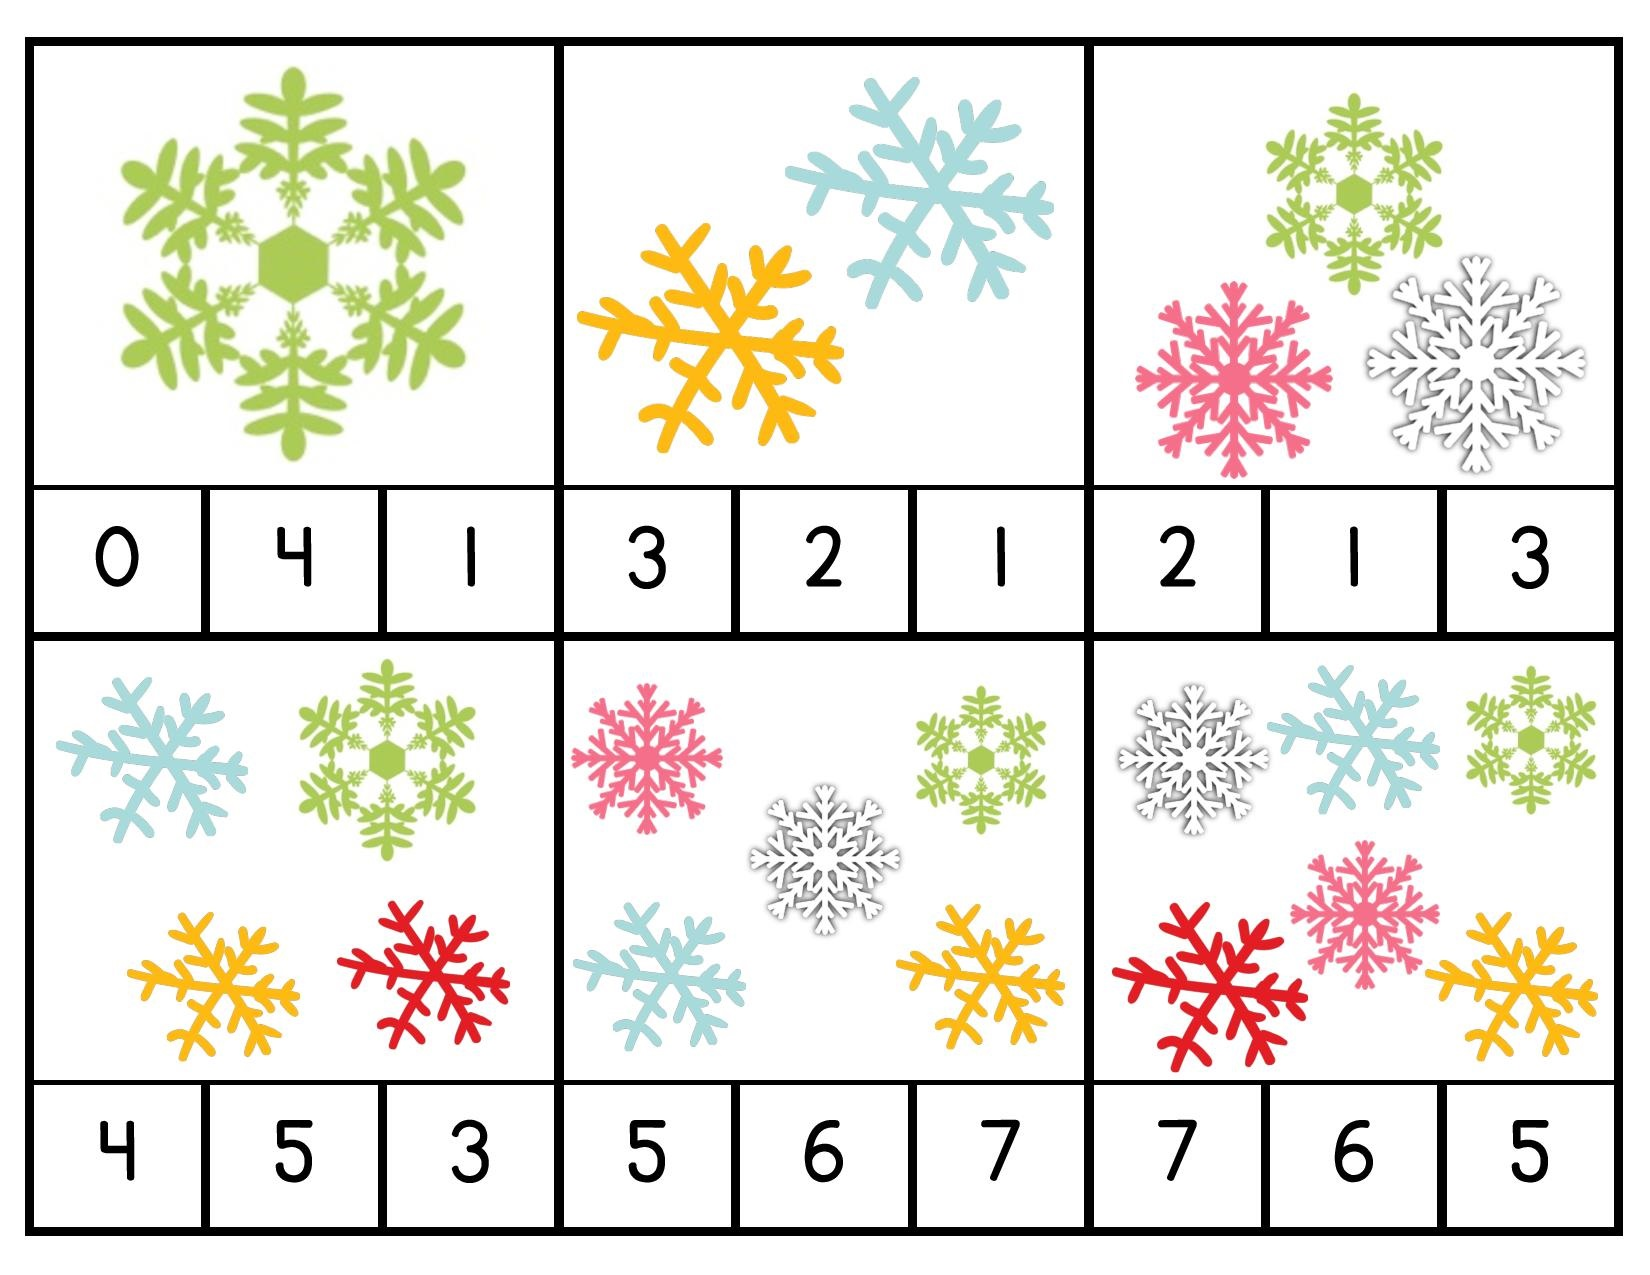 Snowflake Counting Activities Preschool And Homeschool